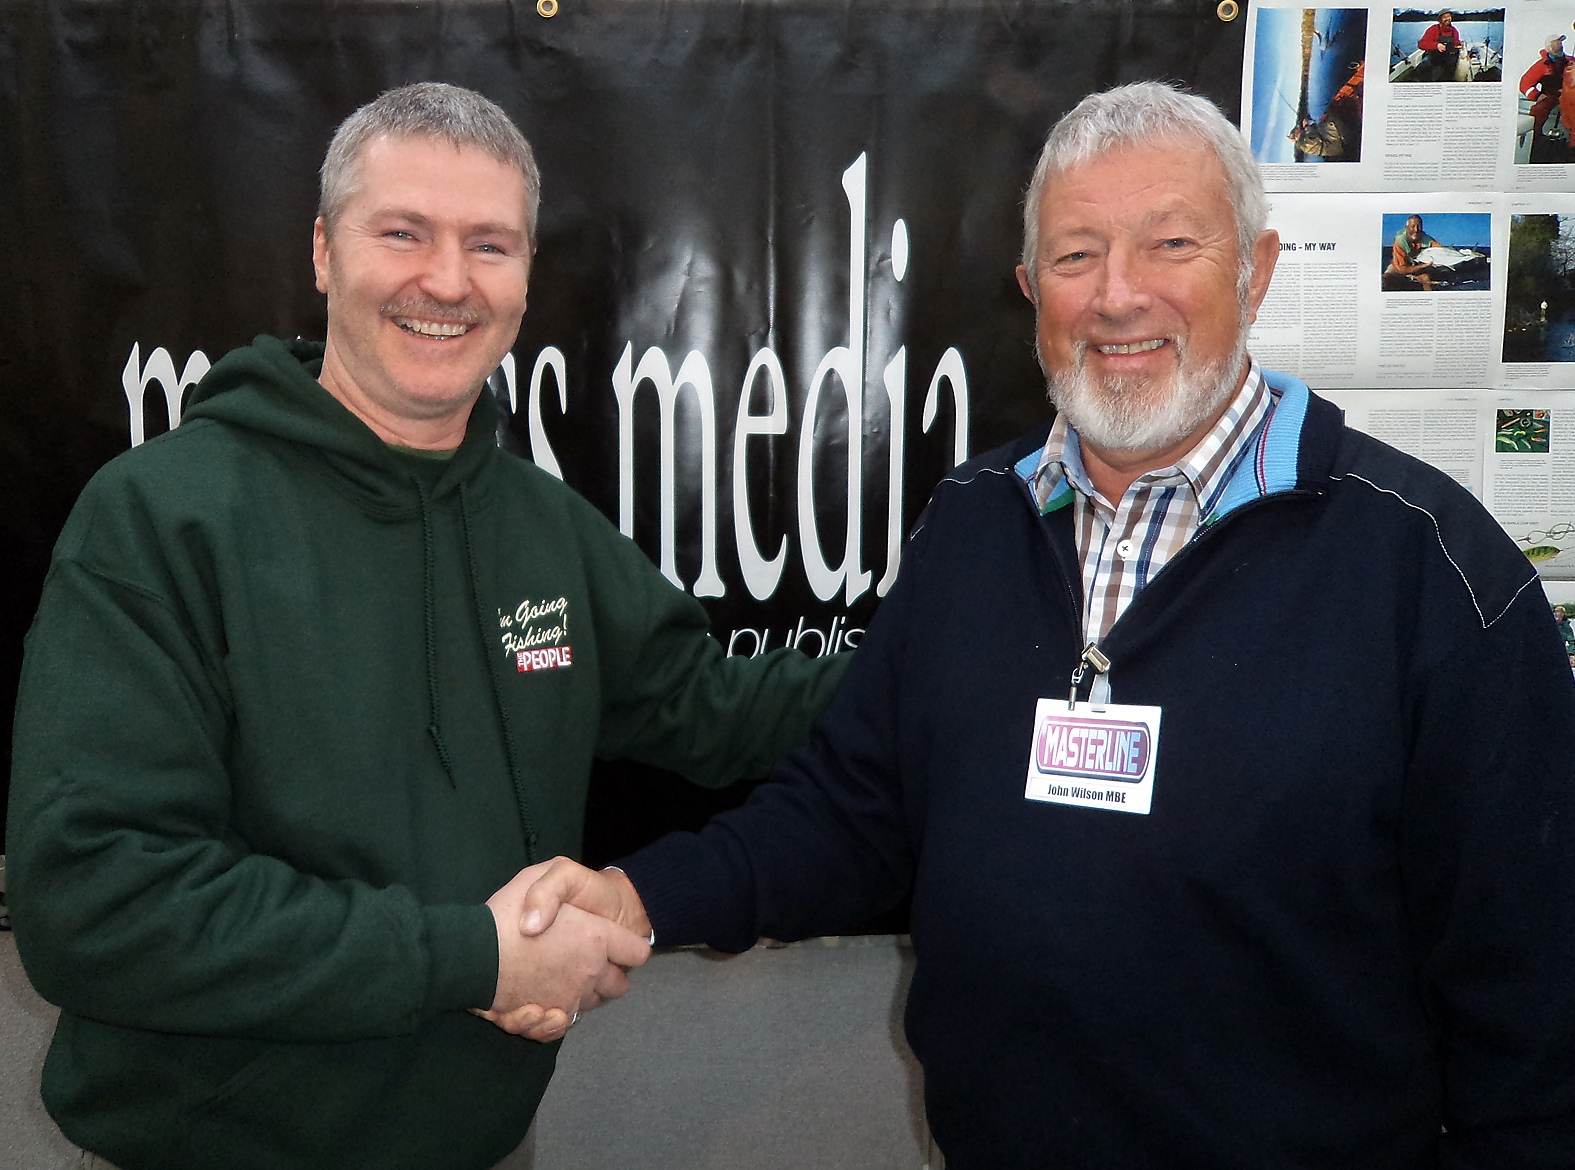 A chat with angling legend John Wilson... couldn't wait for each weeks 'Go Fishing' to come on, many years ago!